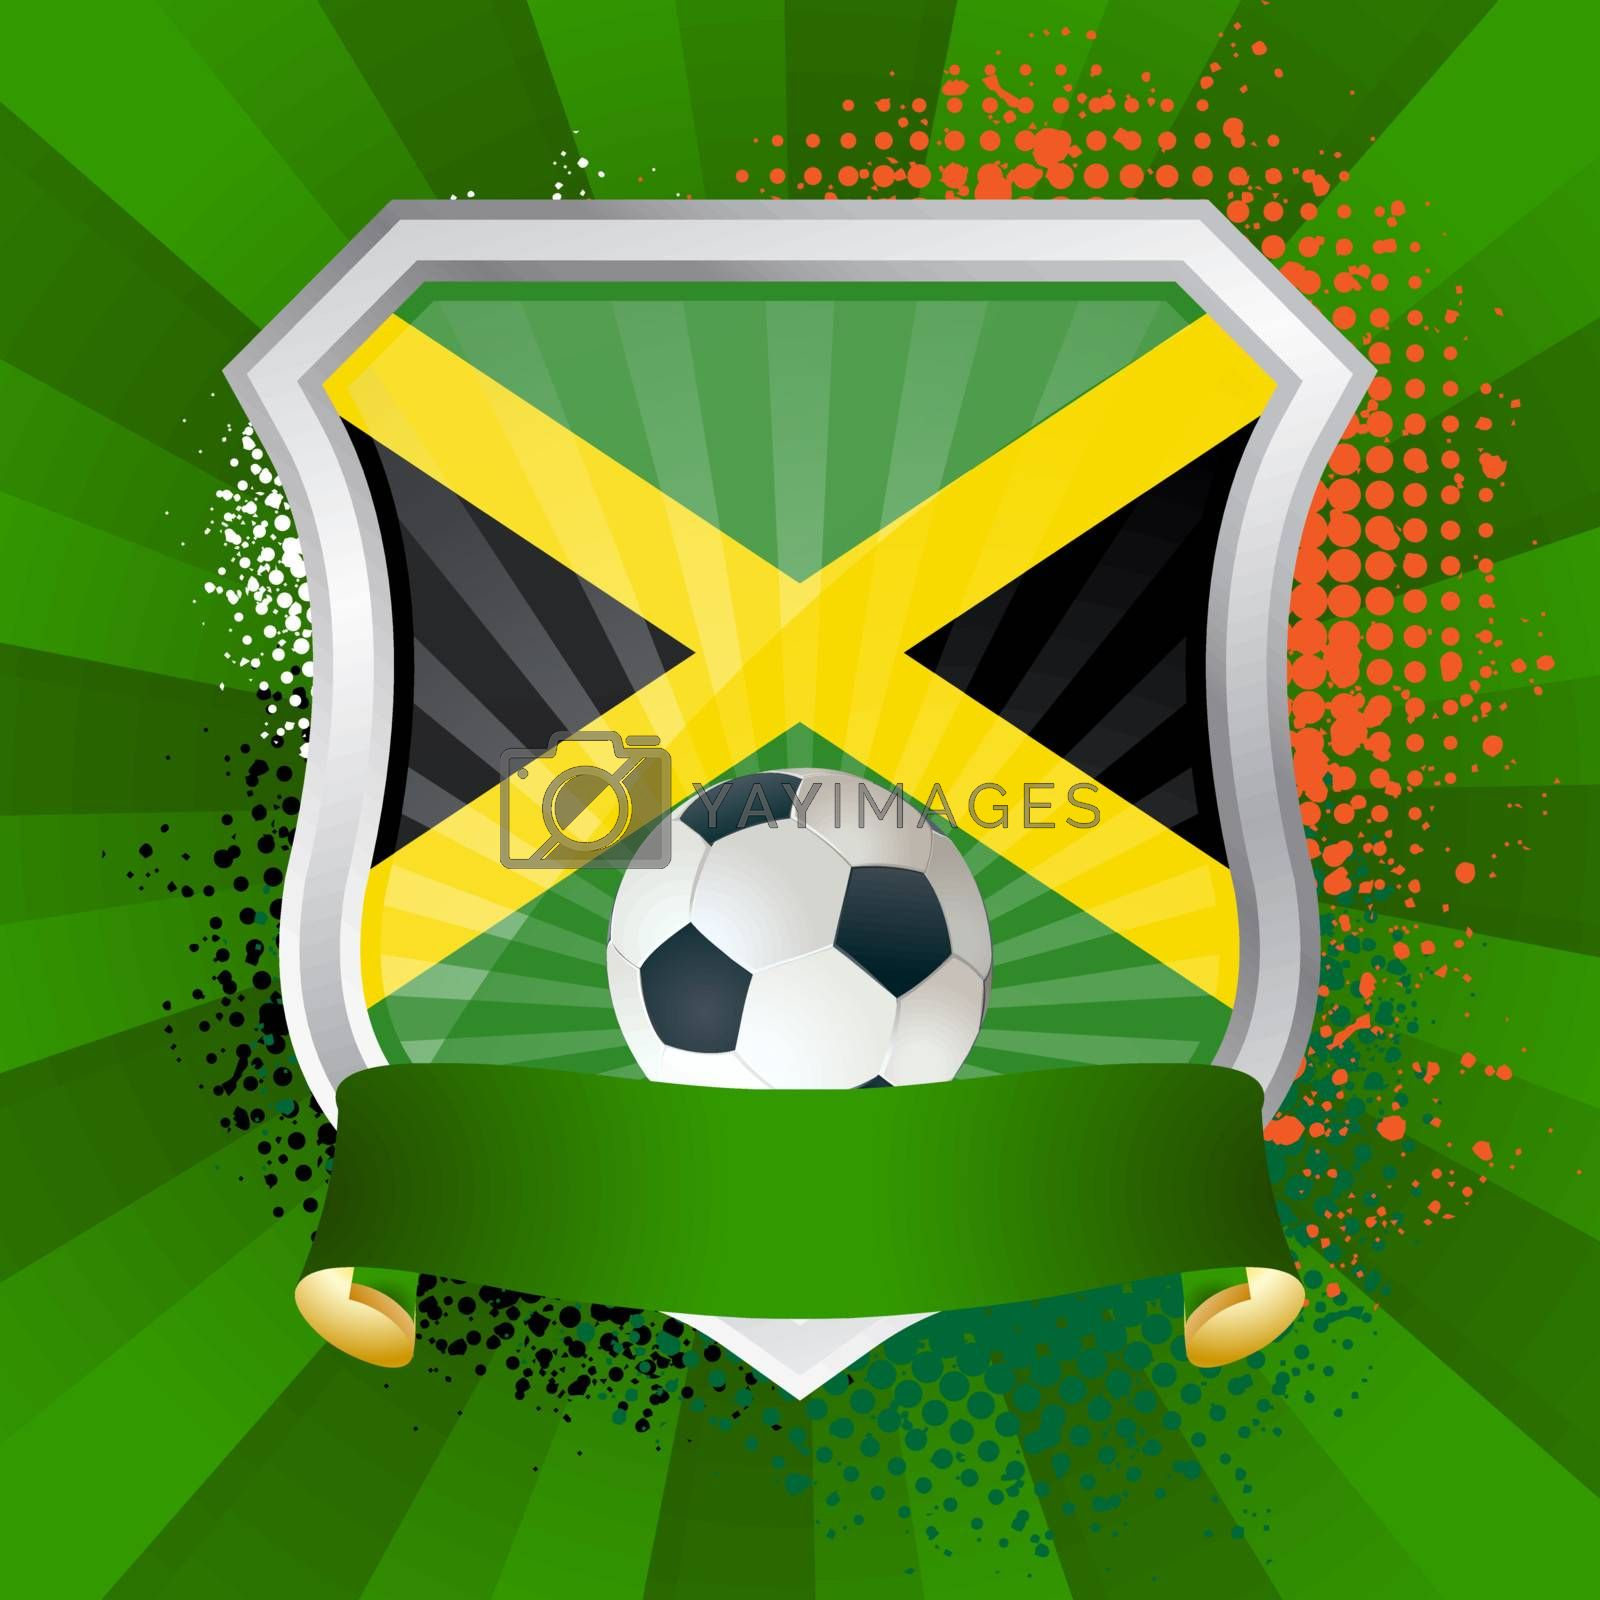 Royalty free image of Shield with flag of Jamaica by Petrov_Vladimir